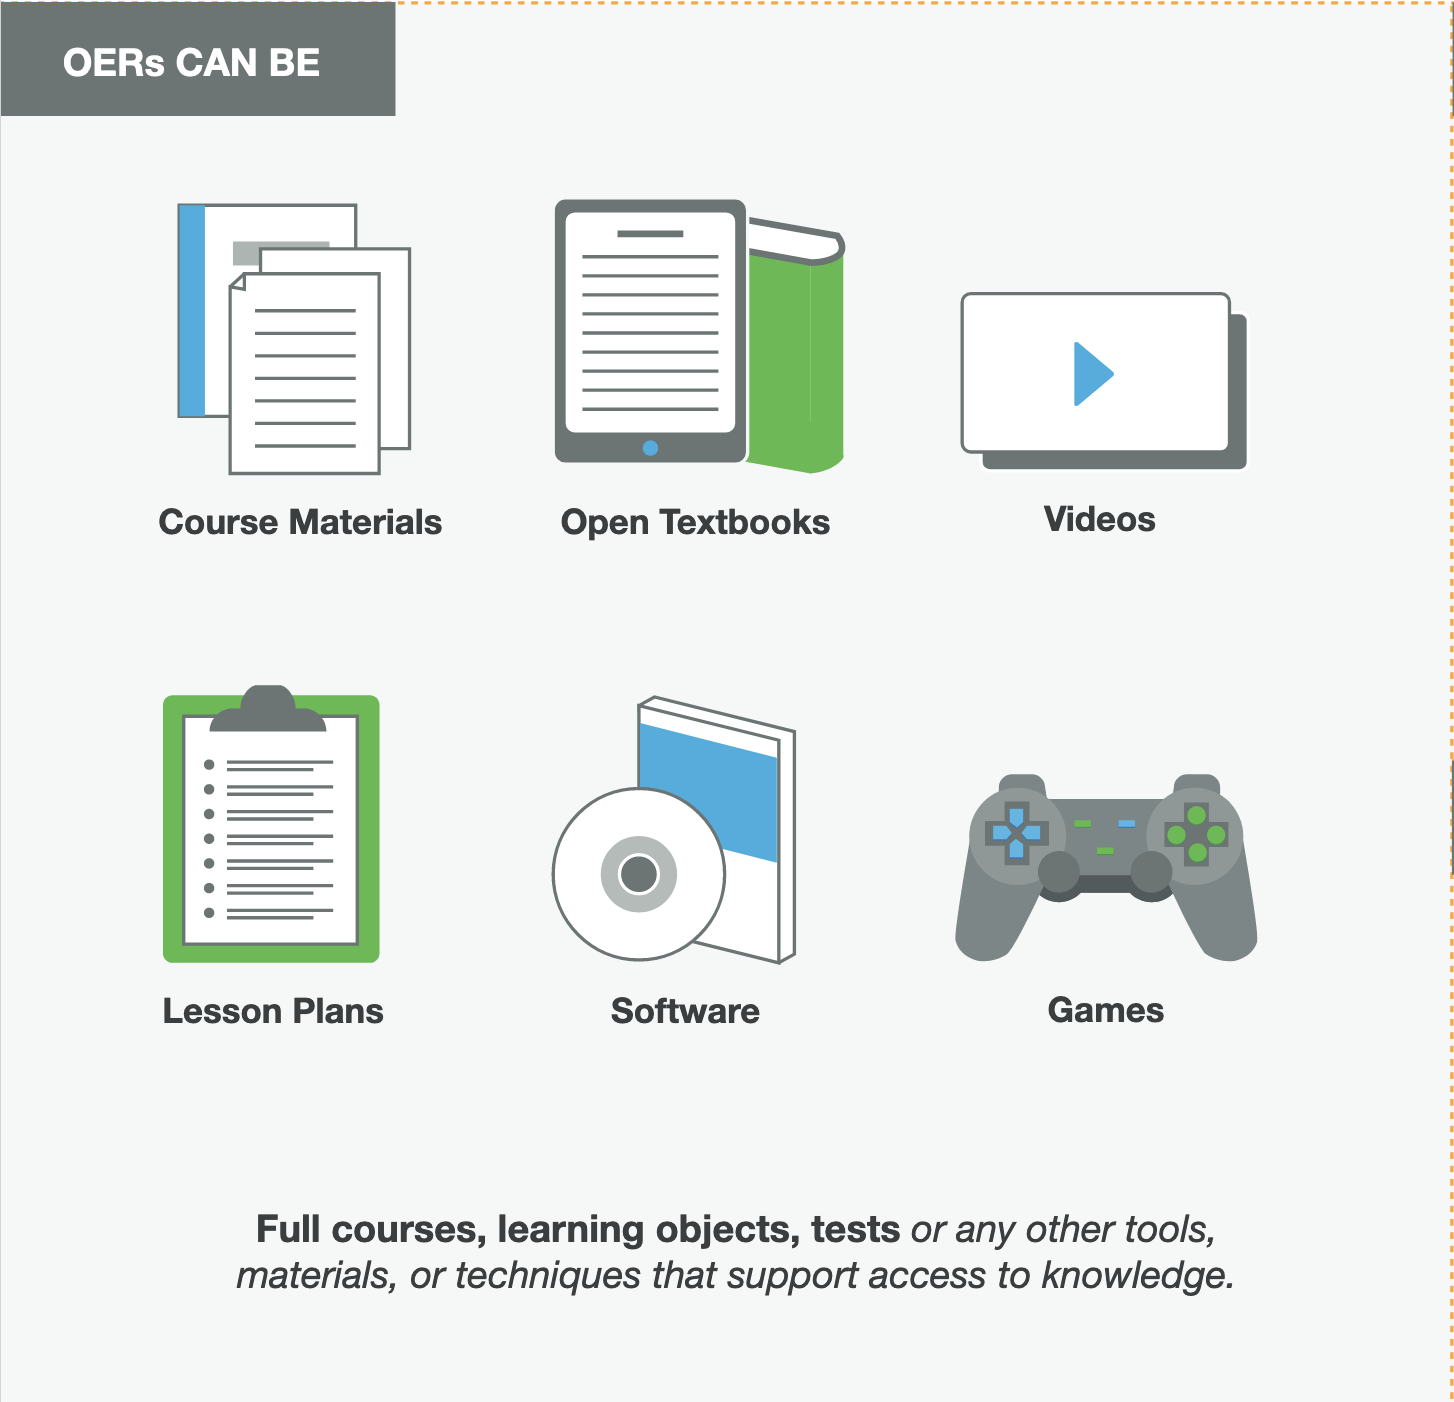 """Graphic stating """"OERs can be"""" with icons for various types of course materials"""